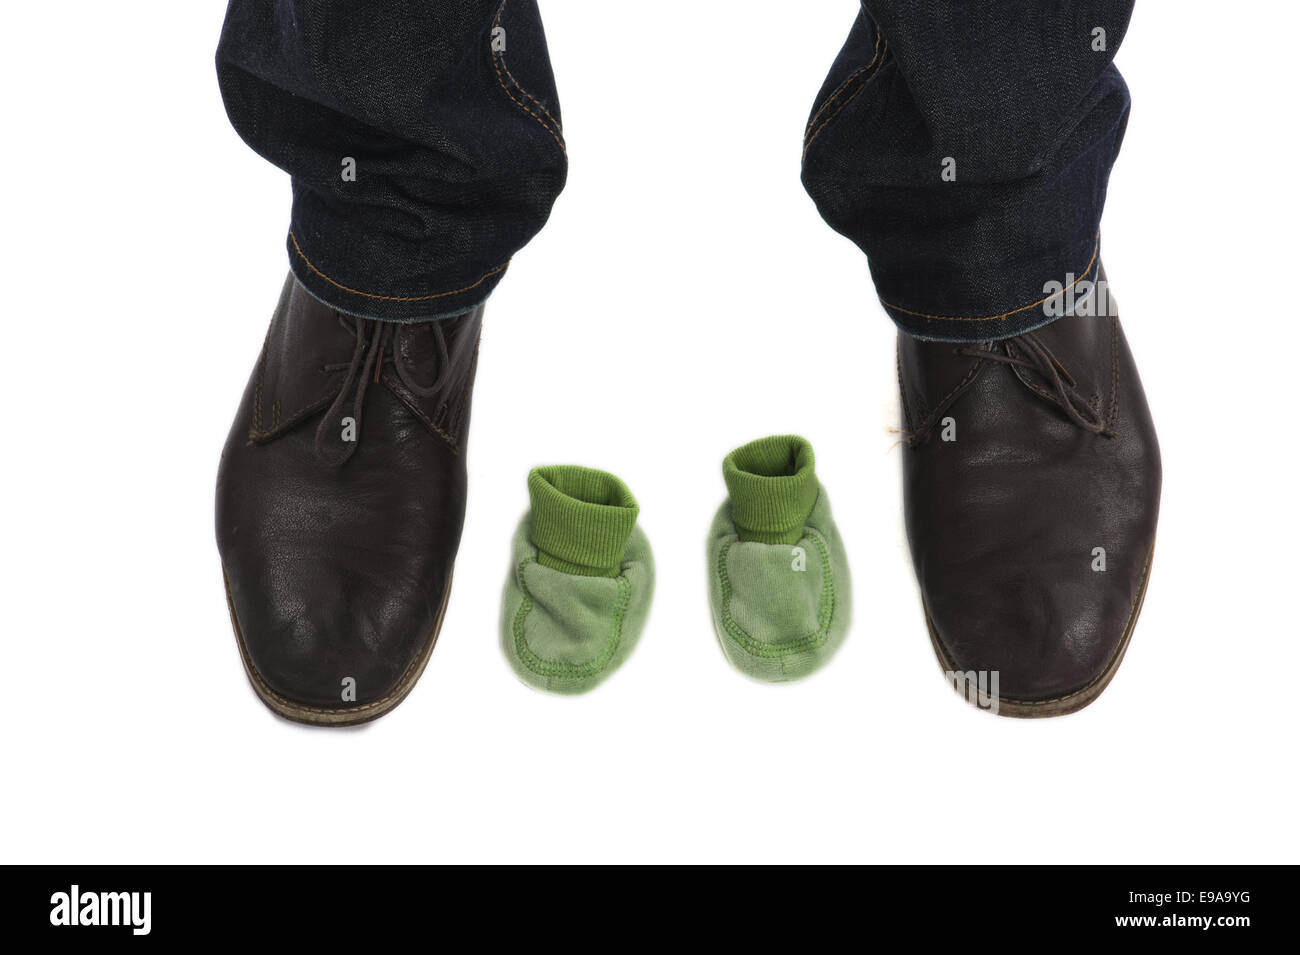 Men's Shoes and Baby Shoes - Stock Image